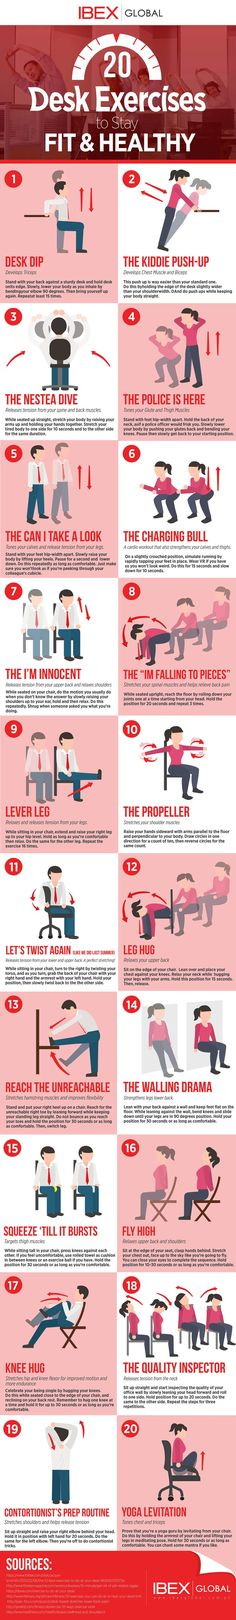 20 Desk Exercises to Stay Fit & Healthy